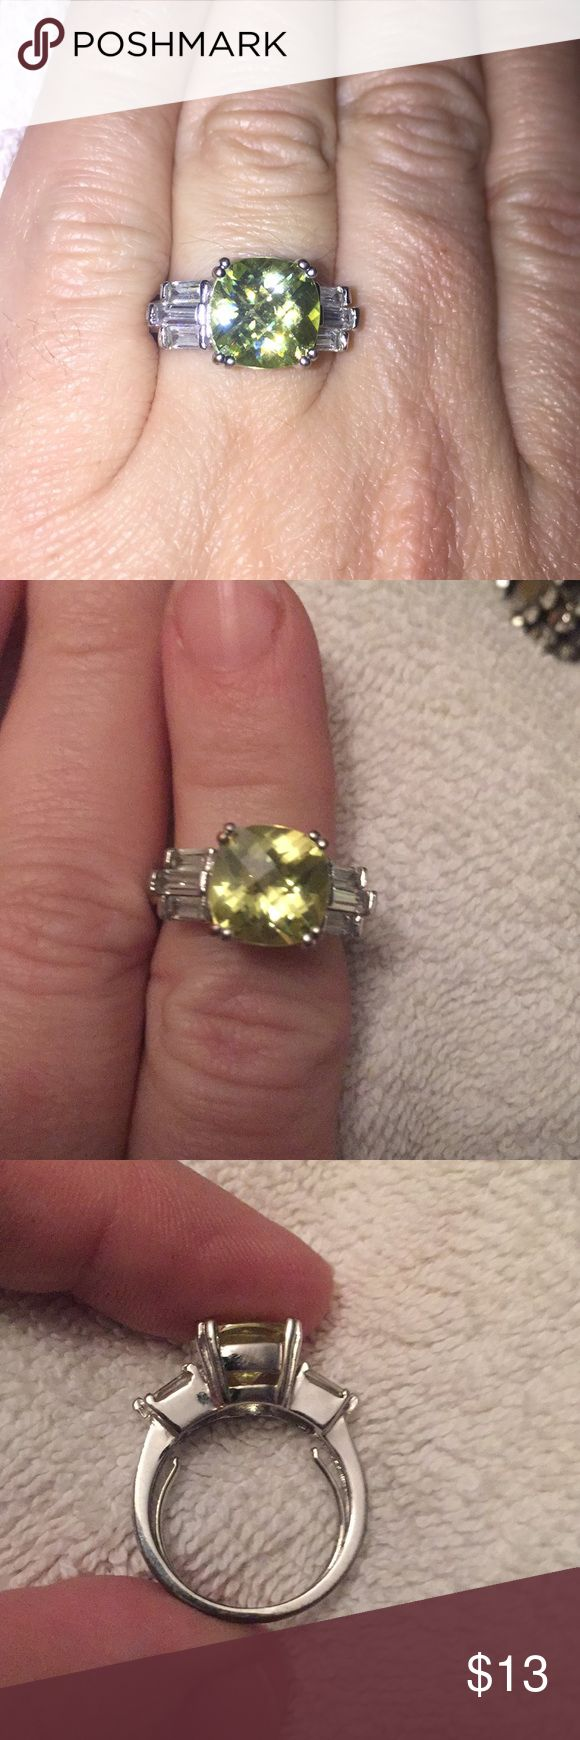 Peridot Ring Ladies  Peridot Cushing cut stone with cz baguette accent stones.  ONE SIZE FITS MOST. 💍💎 Jewelry Rings